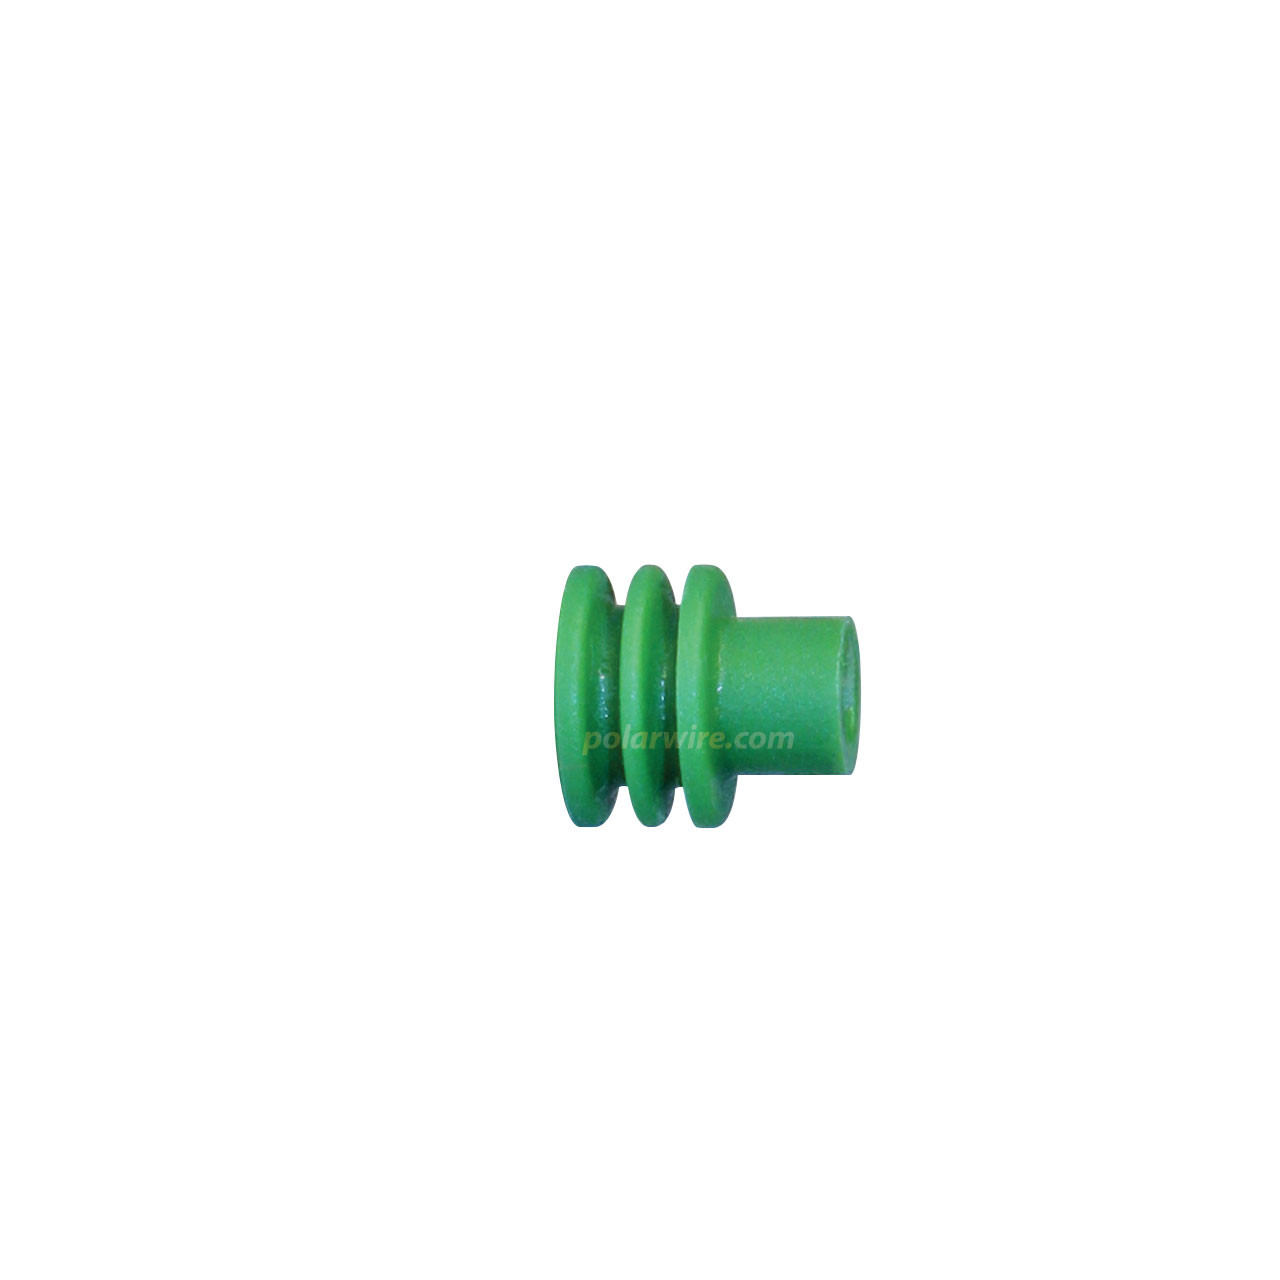 WEATHER PACK 18-20G SEAL GREEN 100 PACK